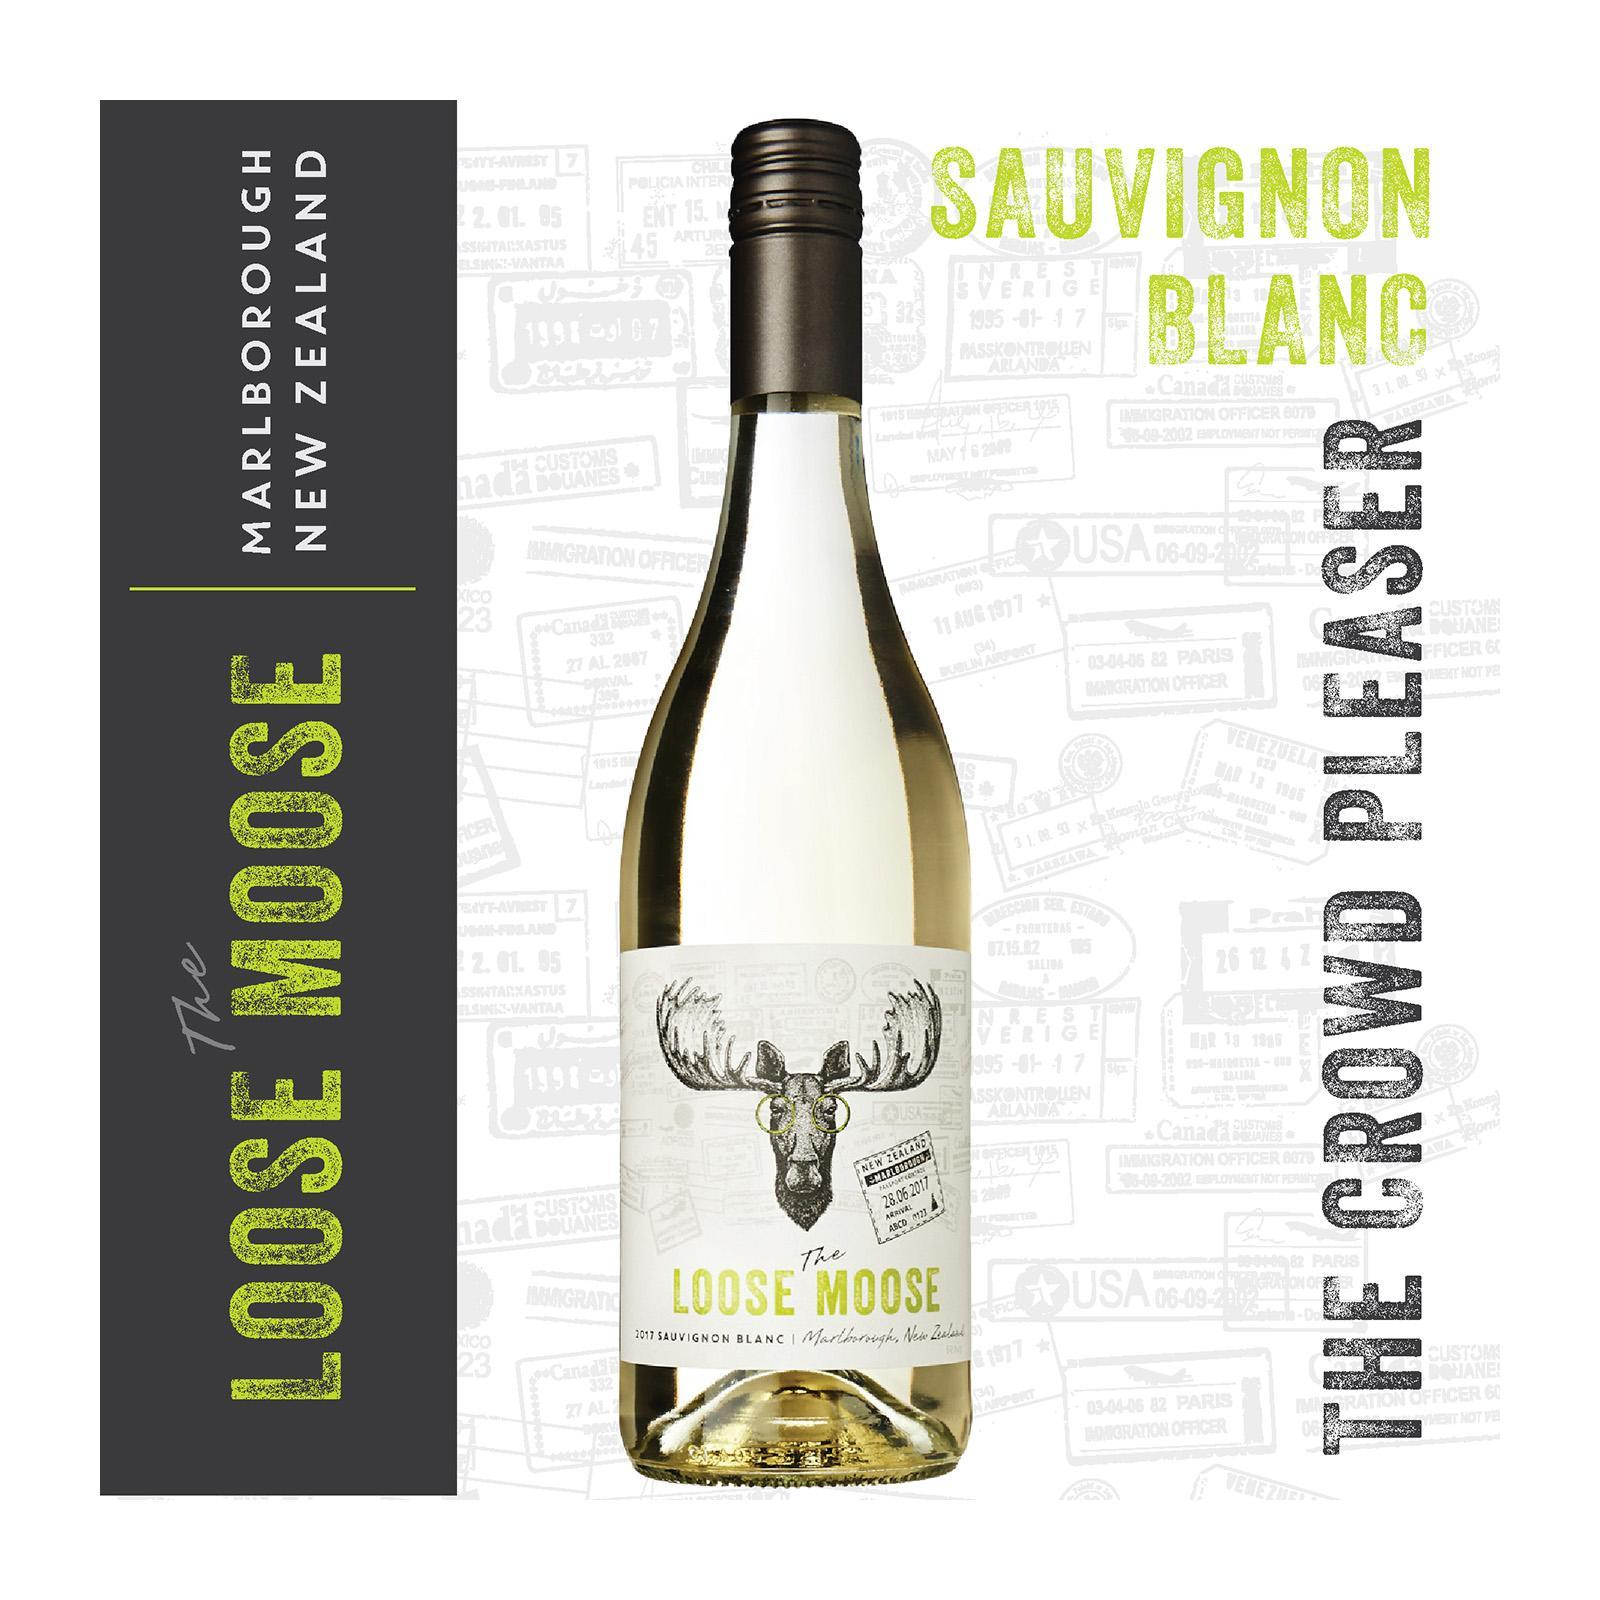 The Loose Moose Marlborough Sauvignon Blanc White Wine